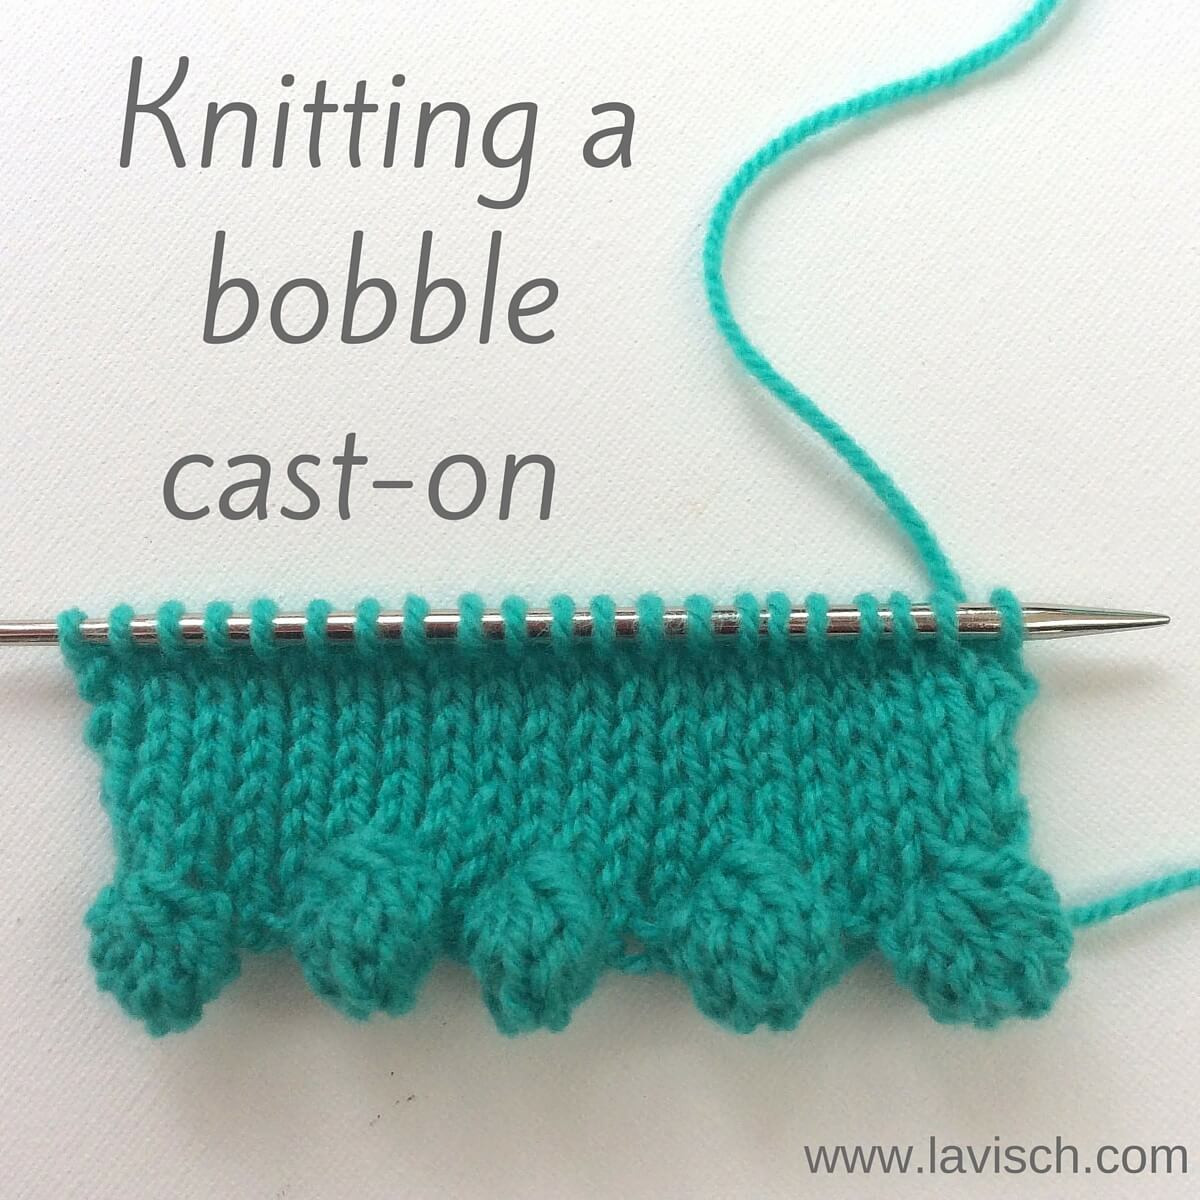 Best Of Tutorial Knitting A Bobble Cast On La Visch Designs Knitting Sites Of Great 40 Ideas Knitting Sites